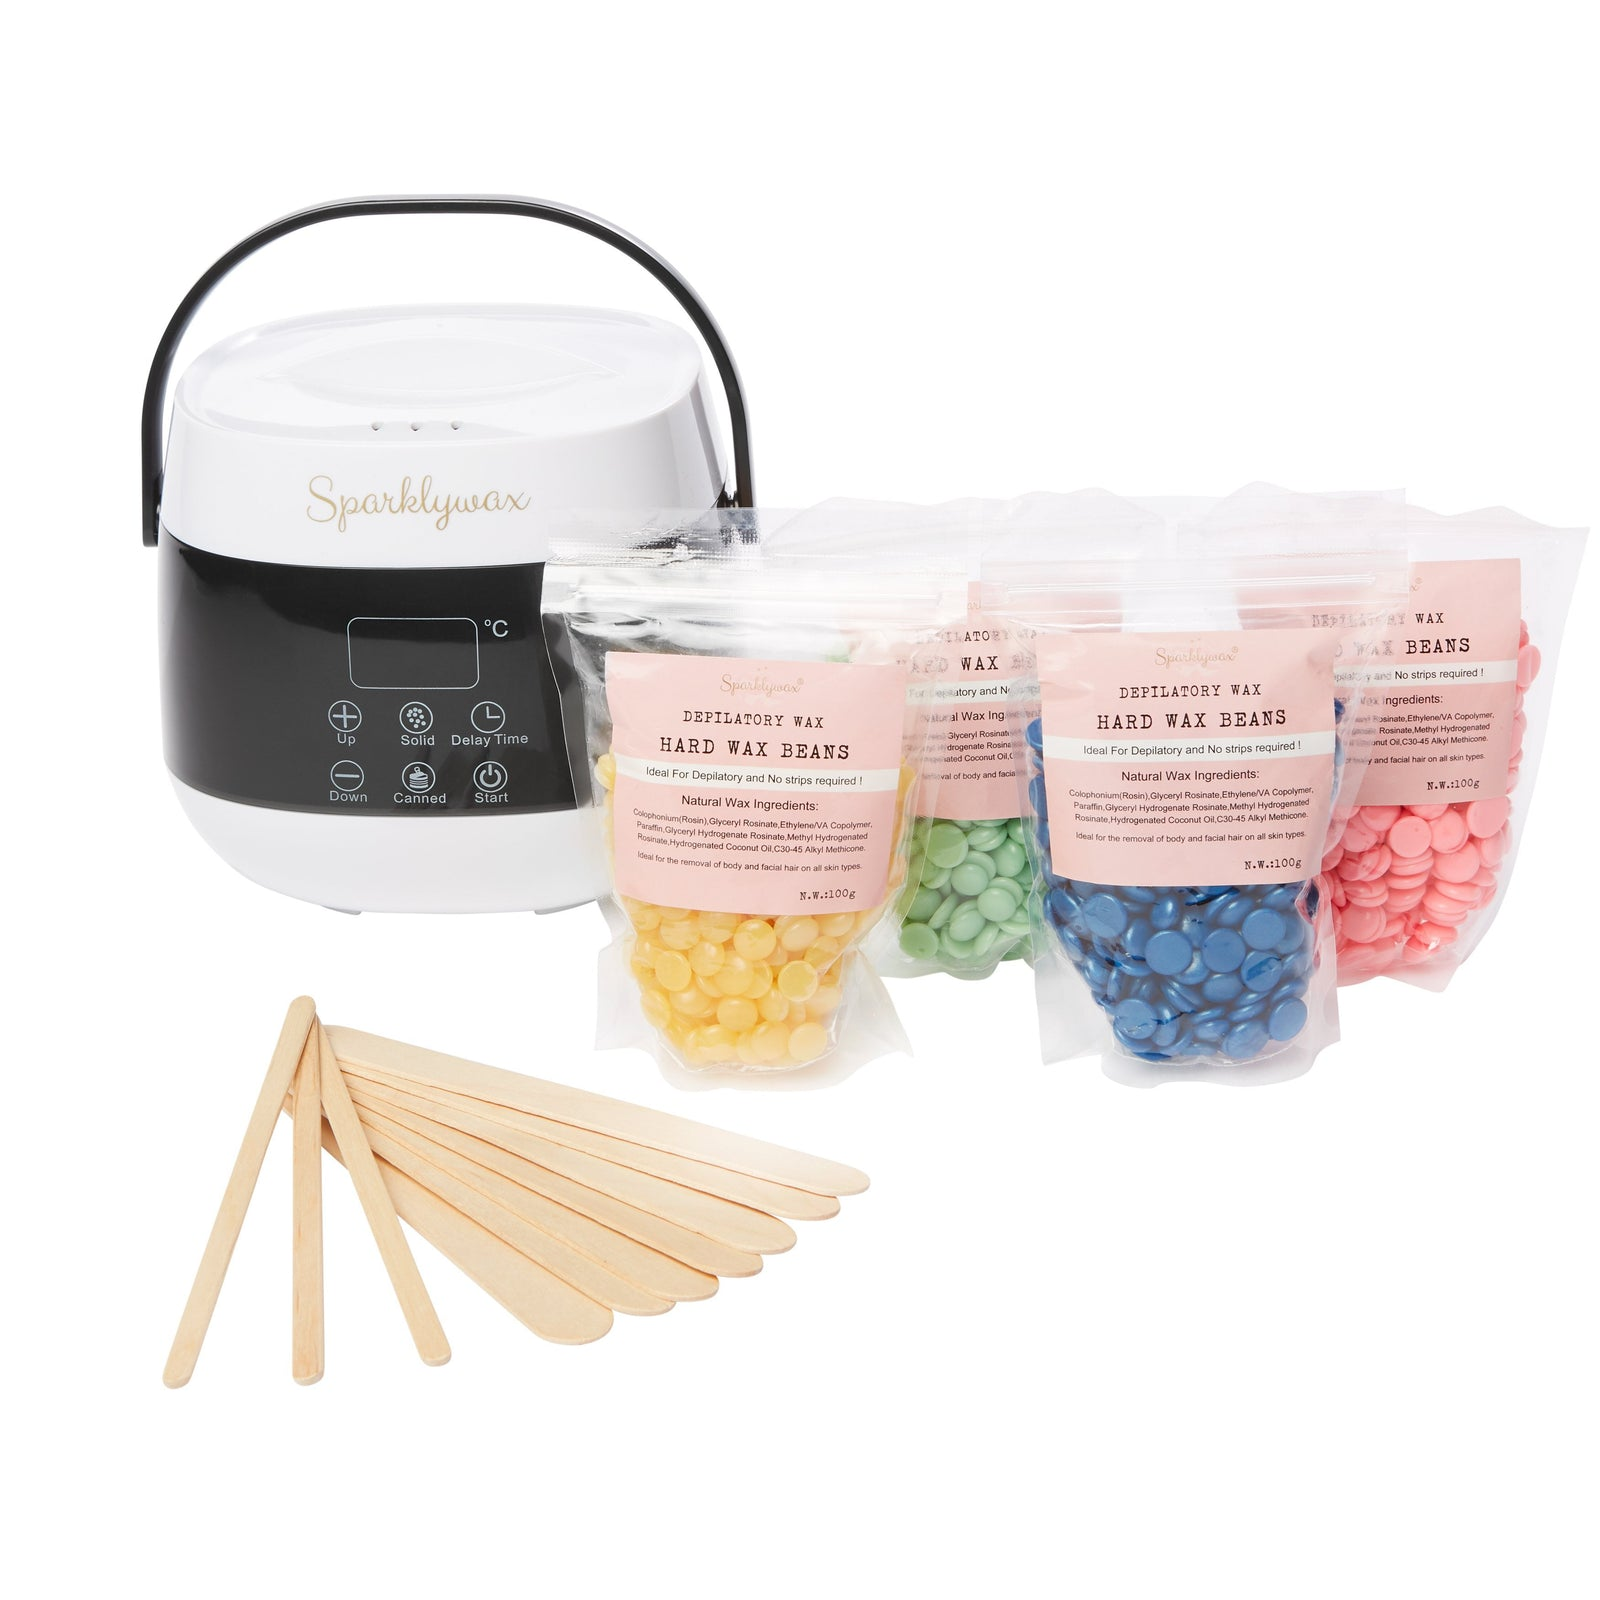 Sparkly Home Wax Kit